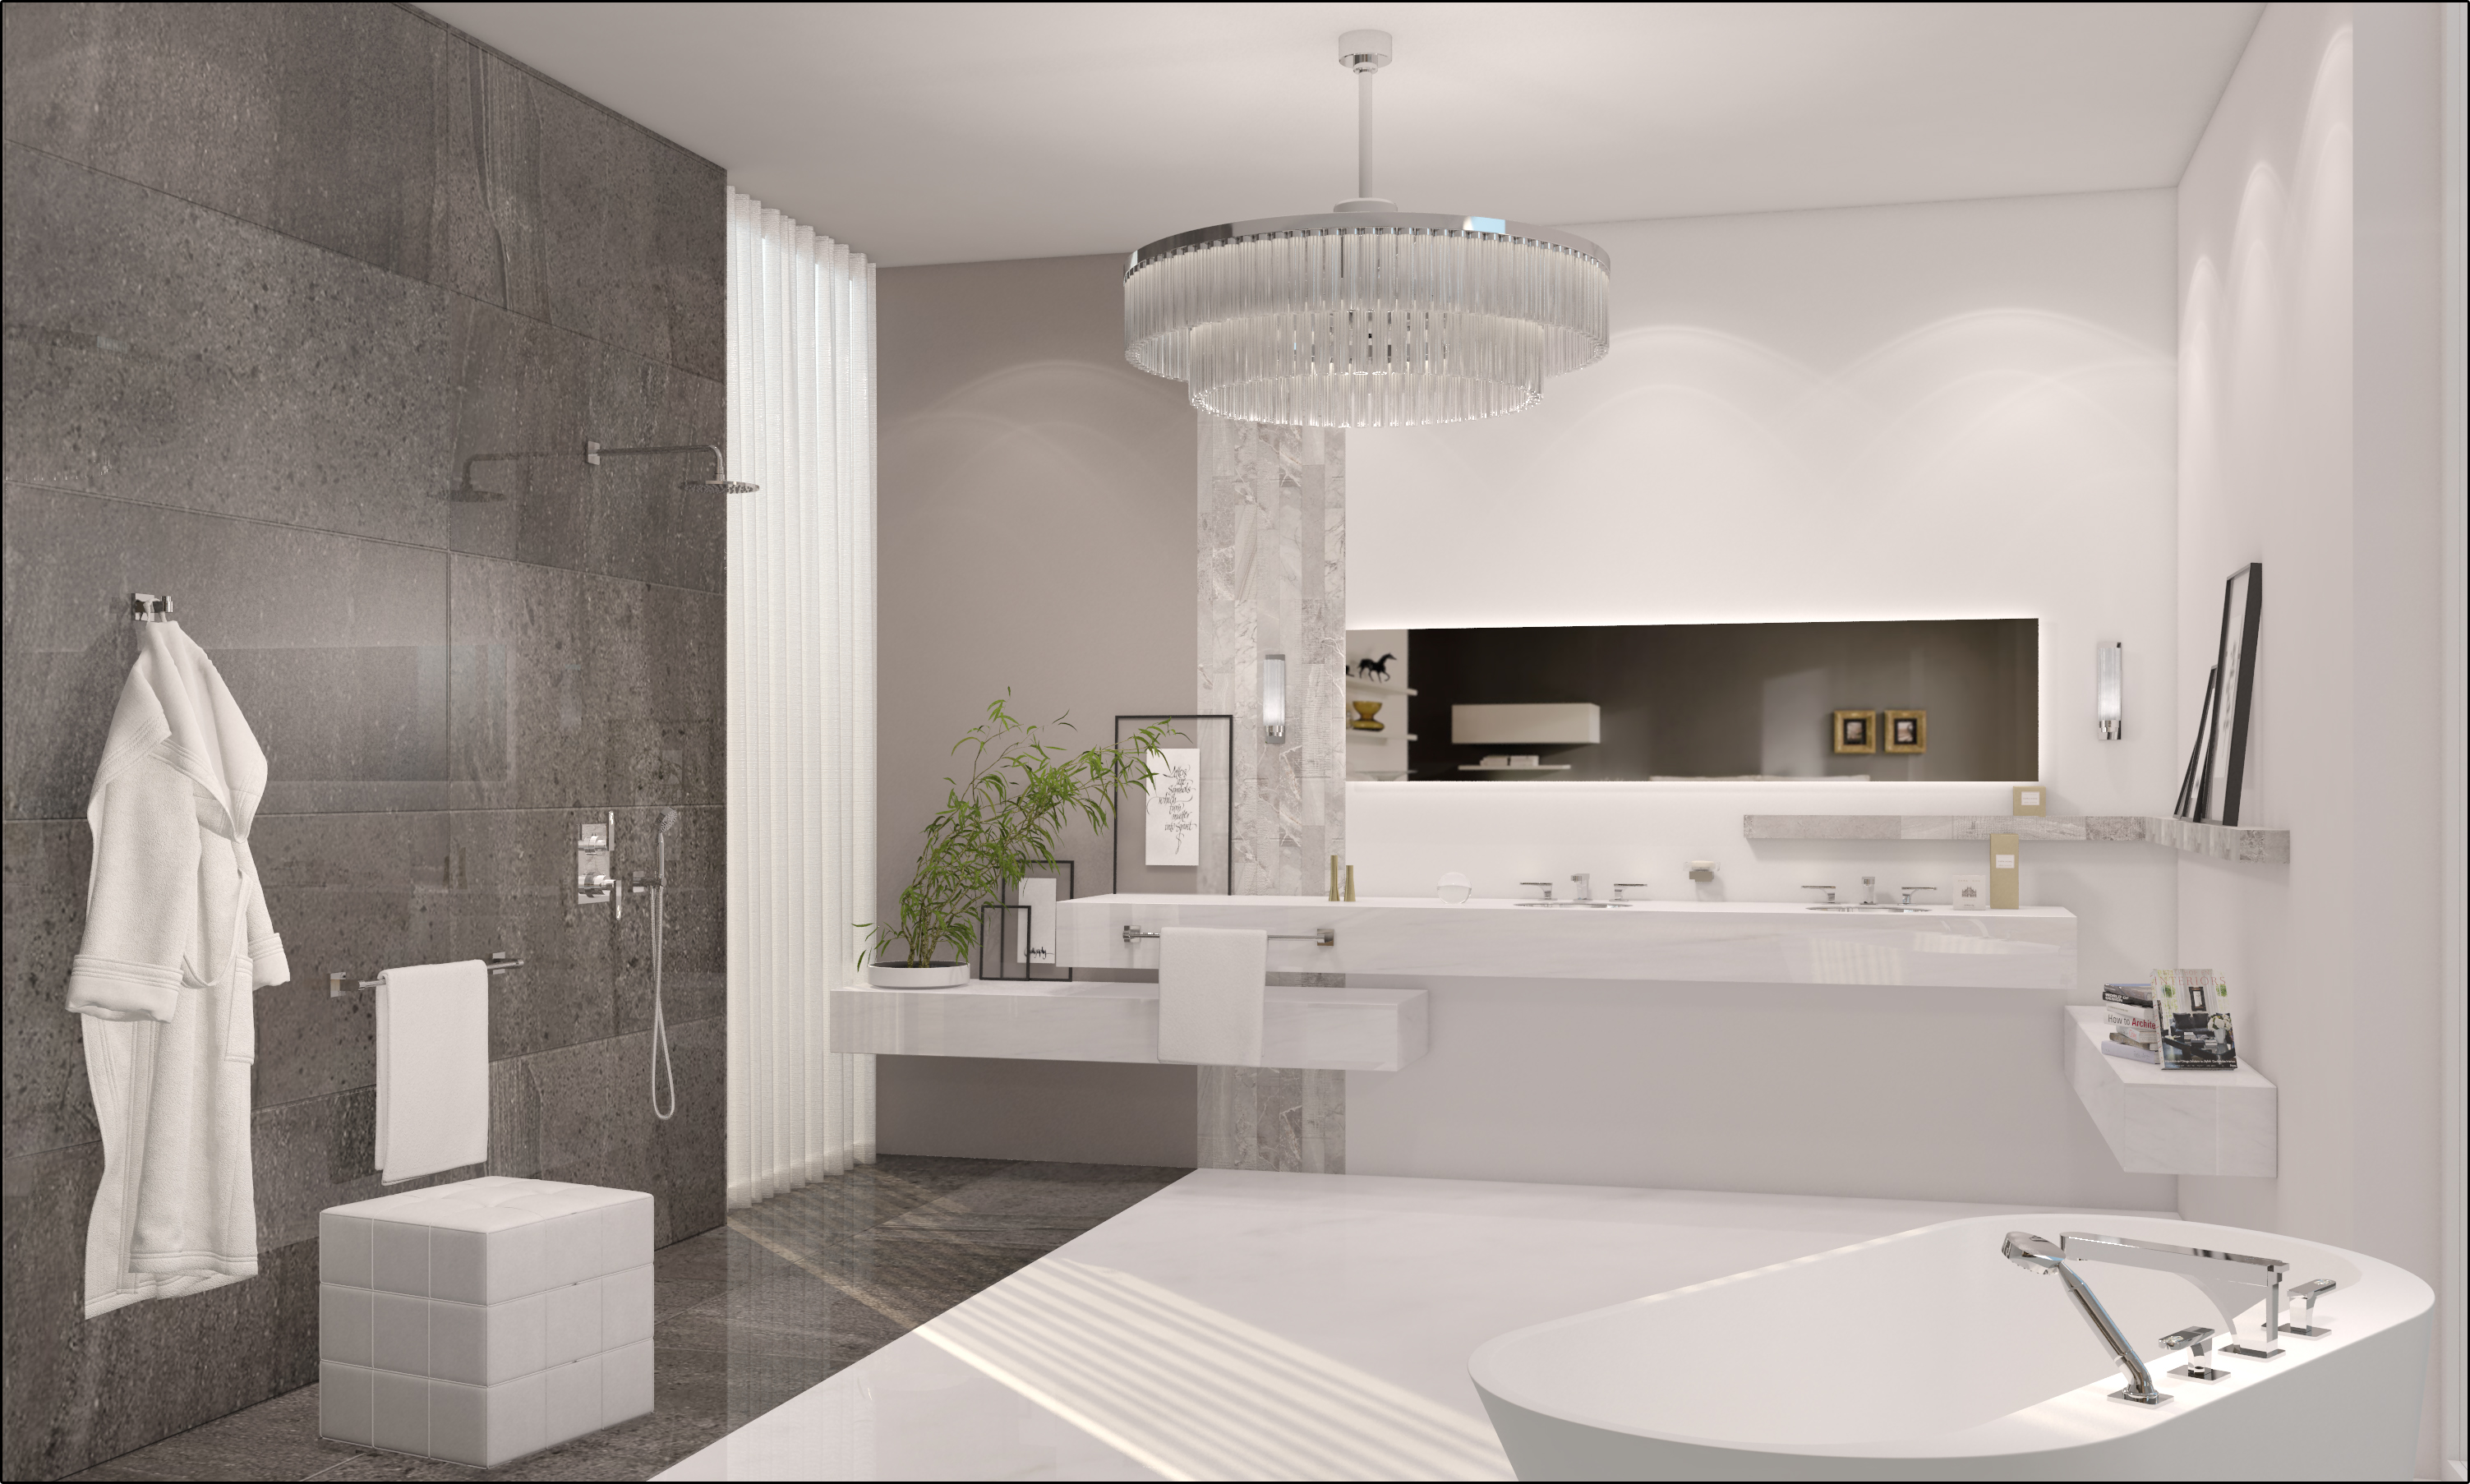 The Latest Design Possibilities For New Bathrooms Whether In A  Refurbishment Or A New Extension, Are Limited Only By Your Imaginationu2026 But  Sometimes The ...